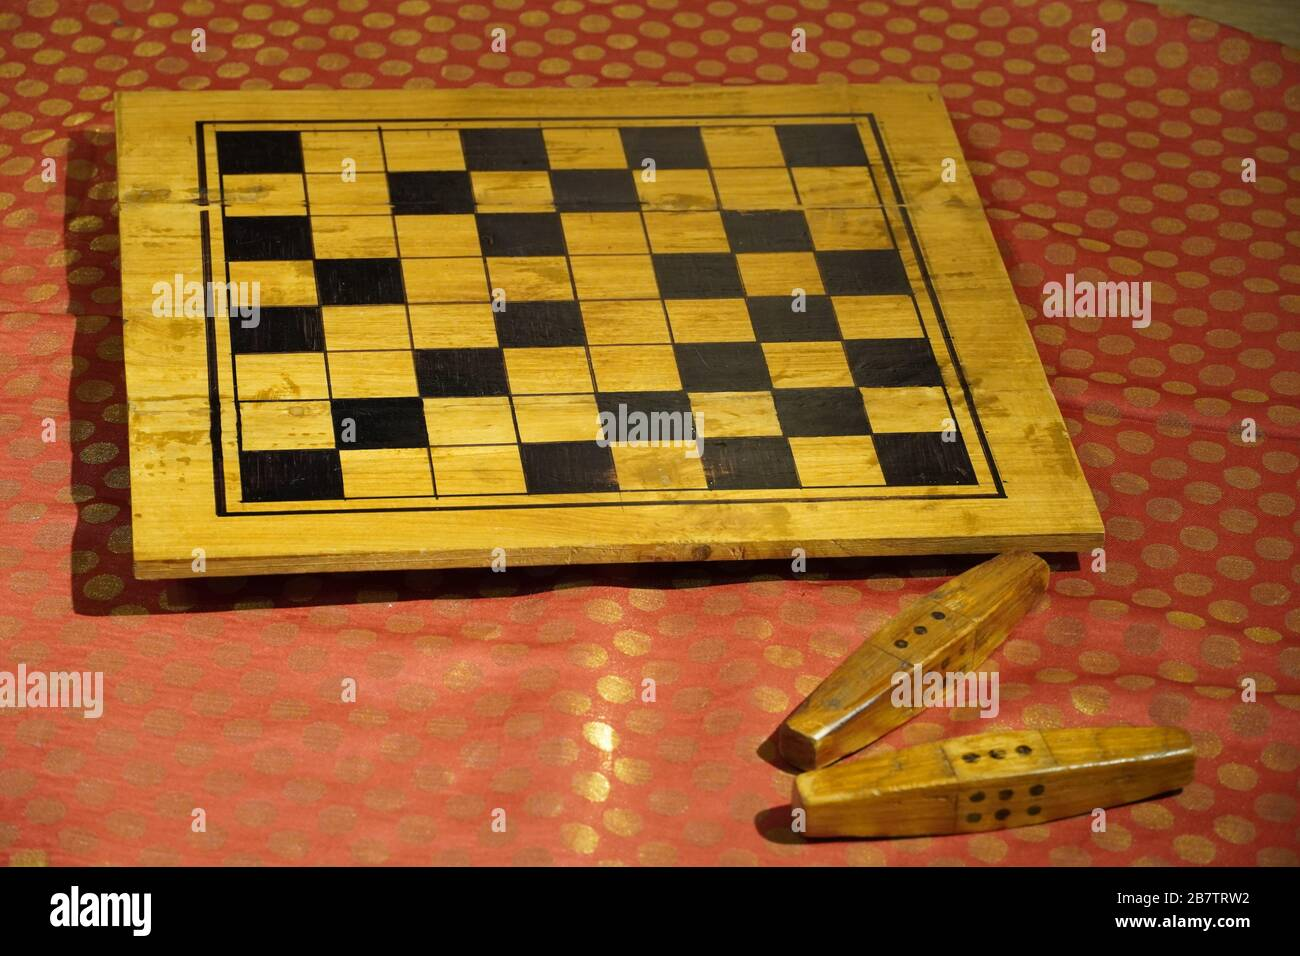 Parcheesi Board High Resolution Stock Photography And Images Alamy